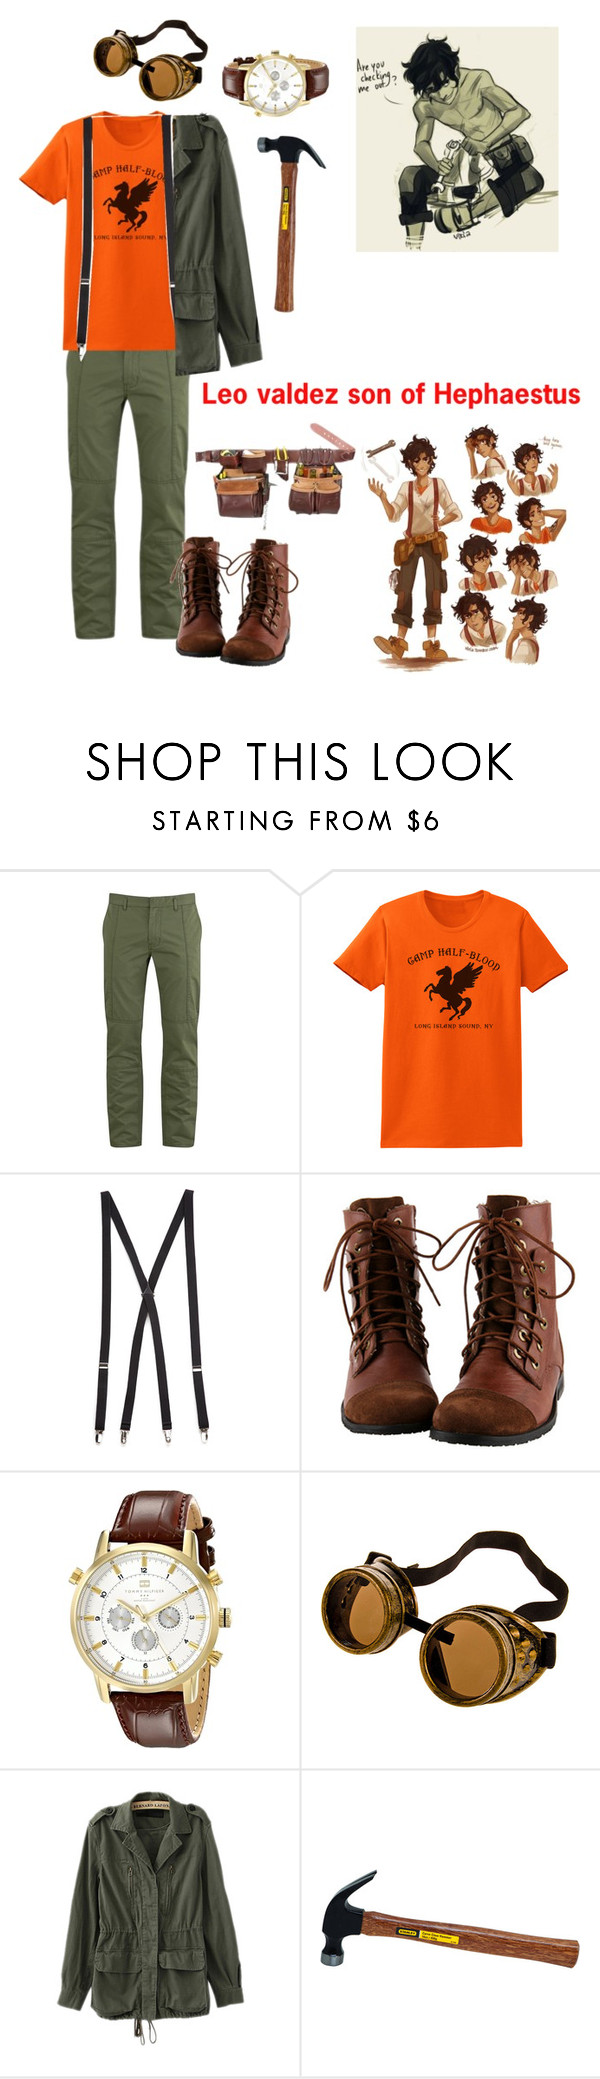 """""""Leo valdez son of Hephaestus"""" by gglloyd ❤ liked on Polyvore featuring Marc by Marc Jacobs, Forever 21, Tommy Hilfiger, women's clothing, women's fashion, women, female, woman, misses and juniors"""